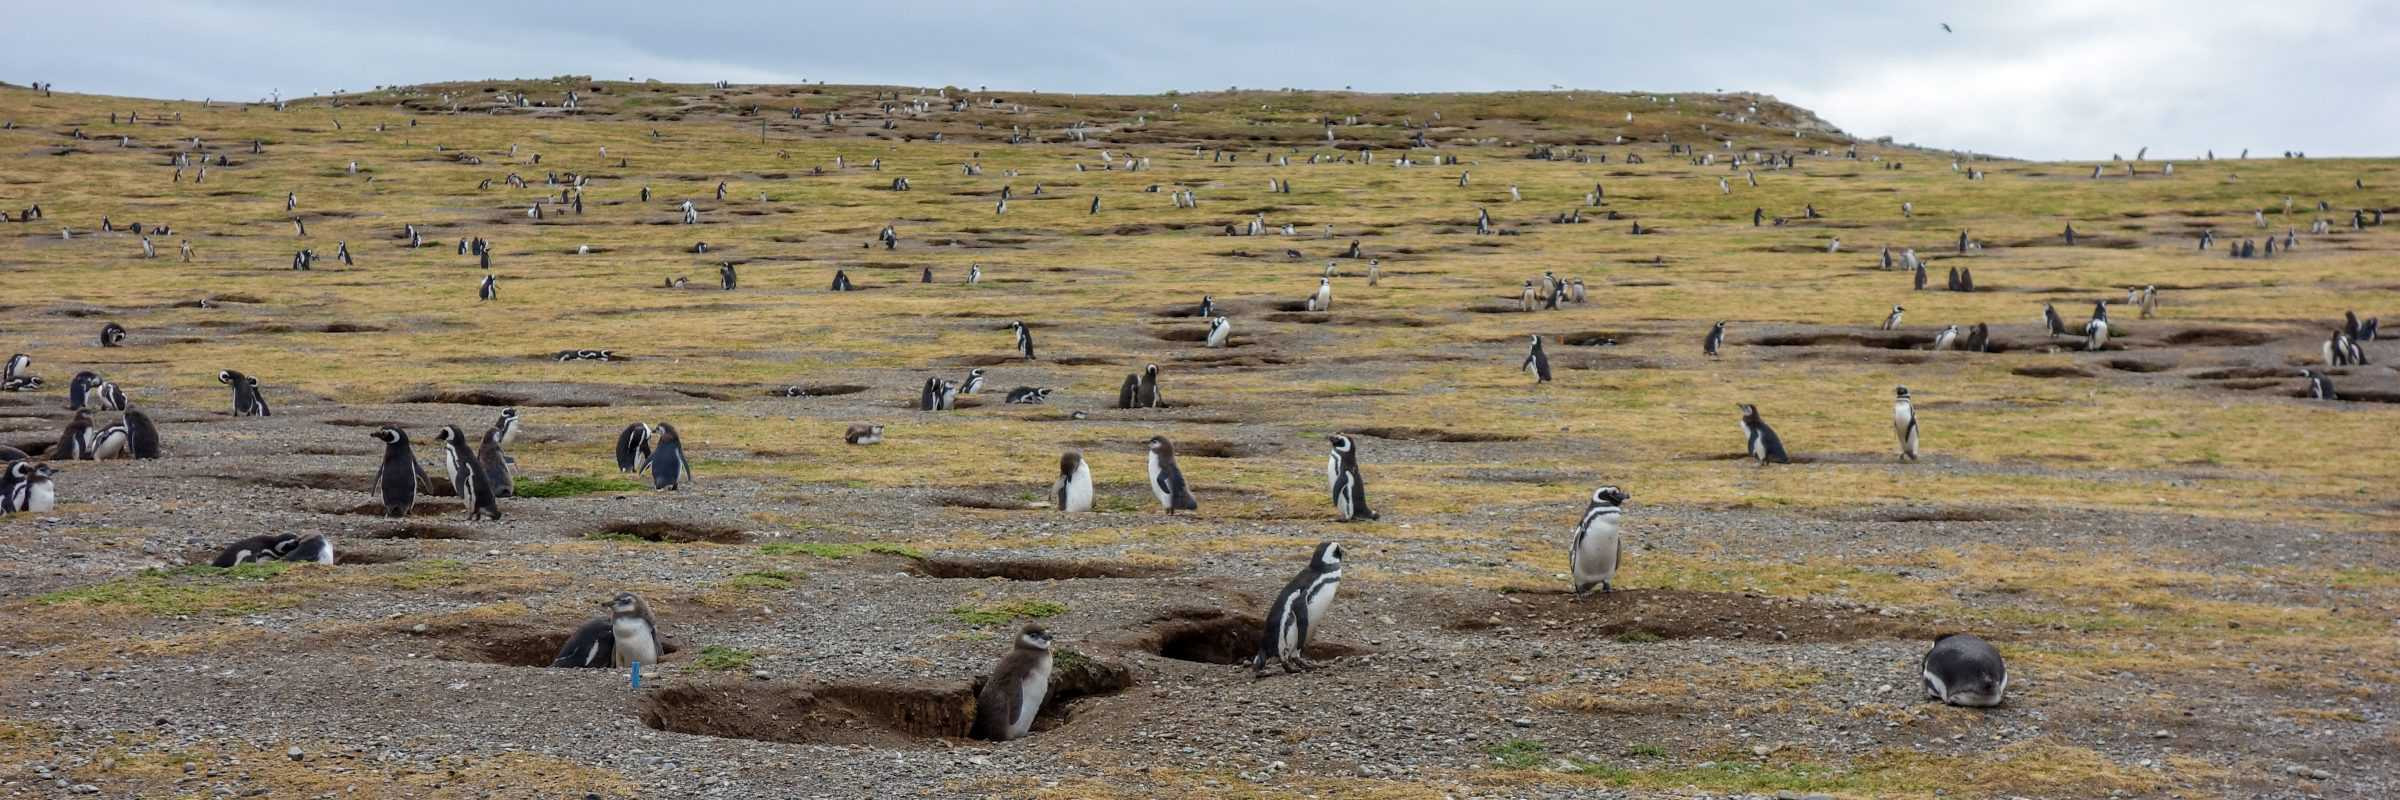 Penguins on Isla Magdalena, Punta Arenas, Patagonia, Chile